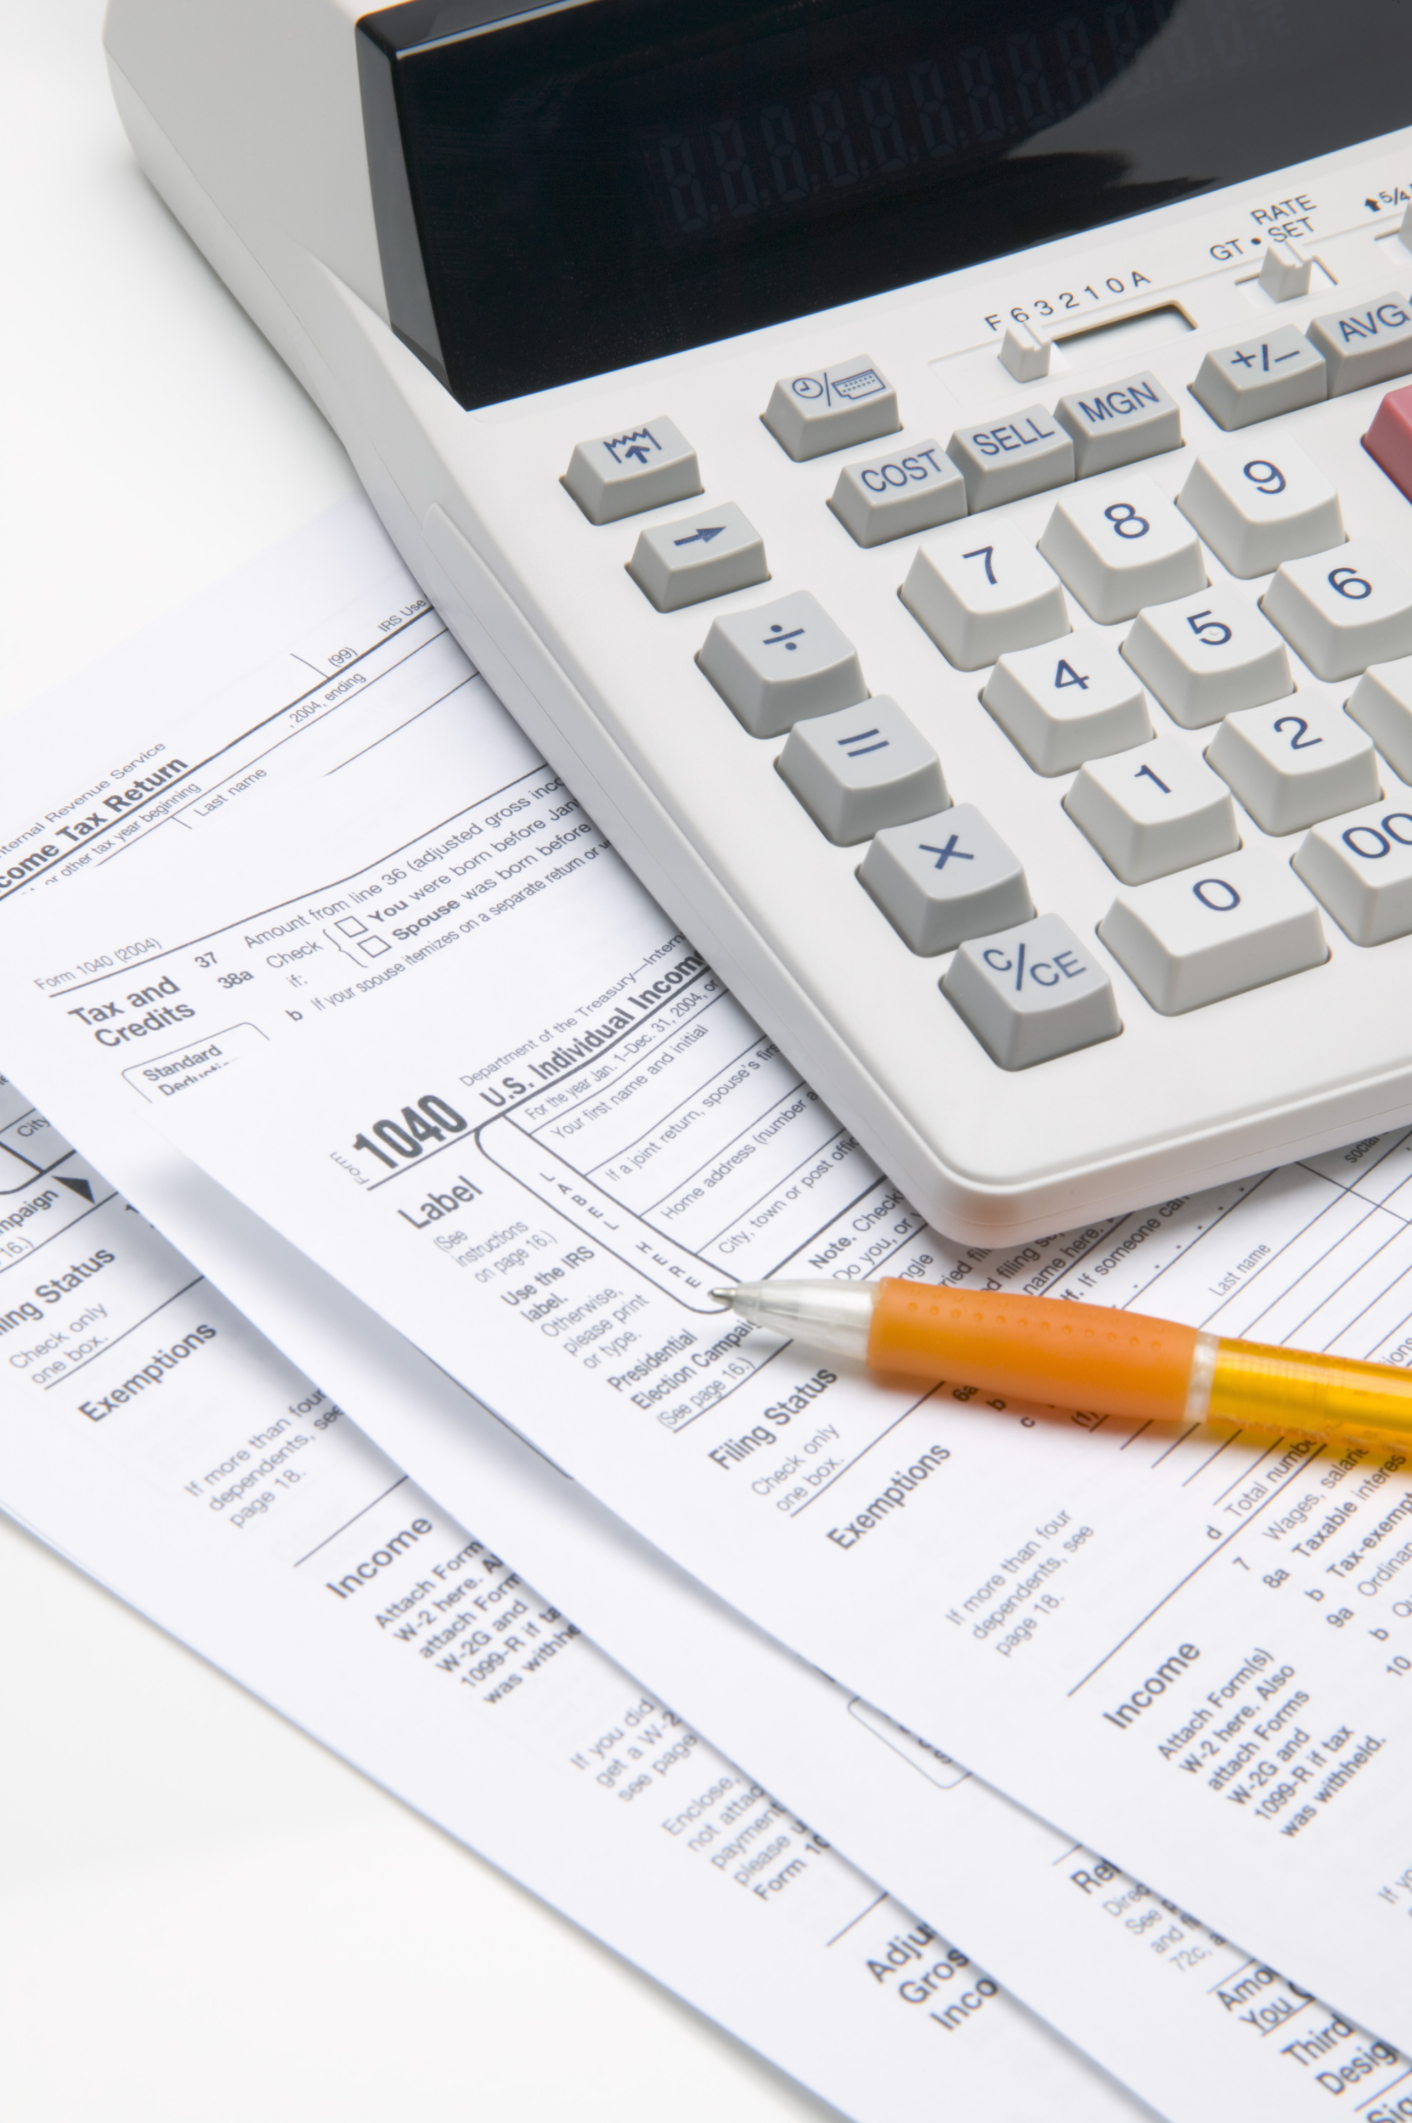 What Documents Should Be Attached To Your Tax Return If Paper Filing